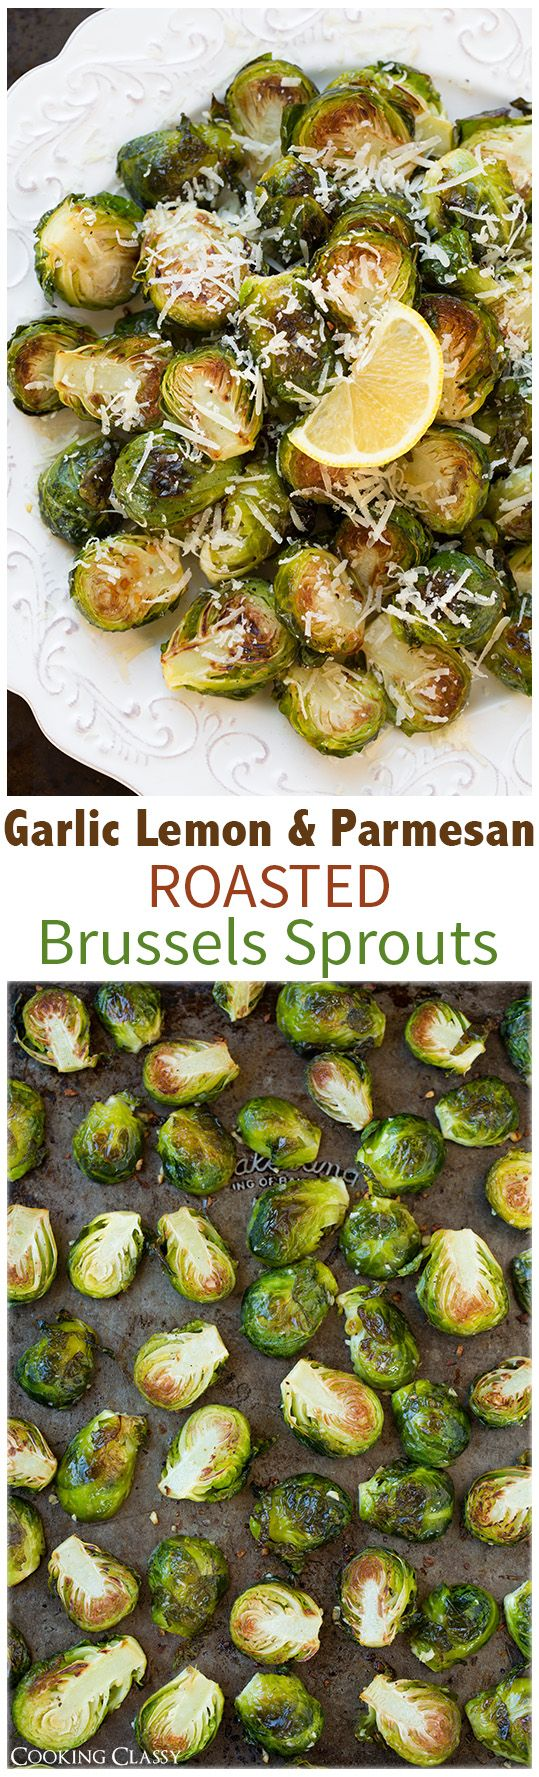 Garlic Lemon and Parmesan Roasted Brussels Sprouts